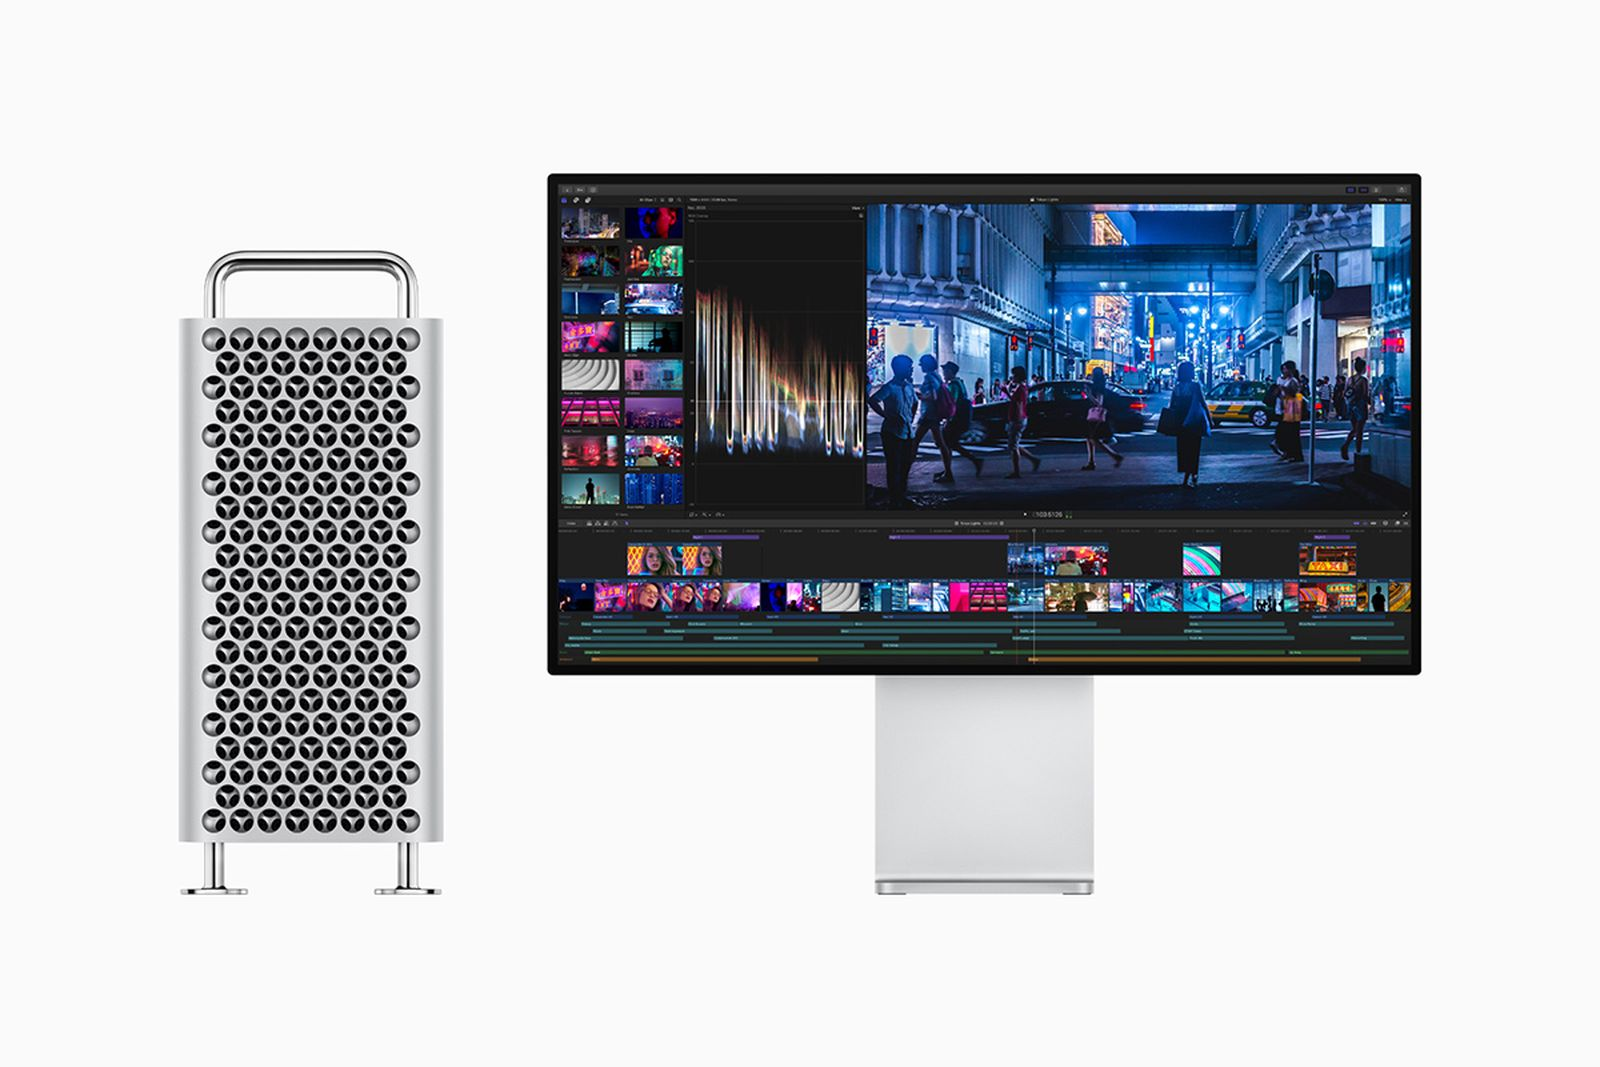 apple mac pro WWDC 2019